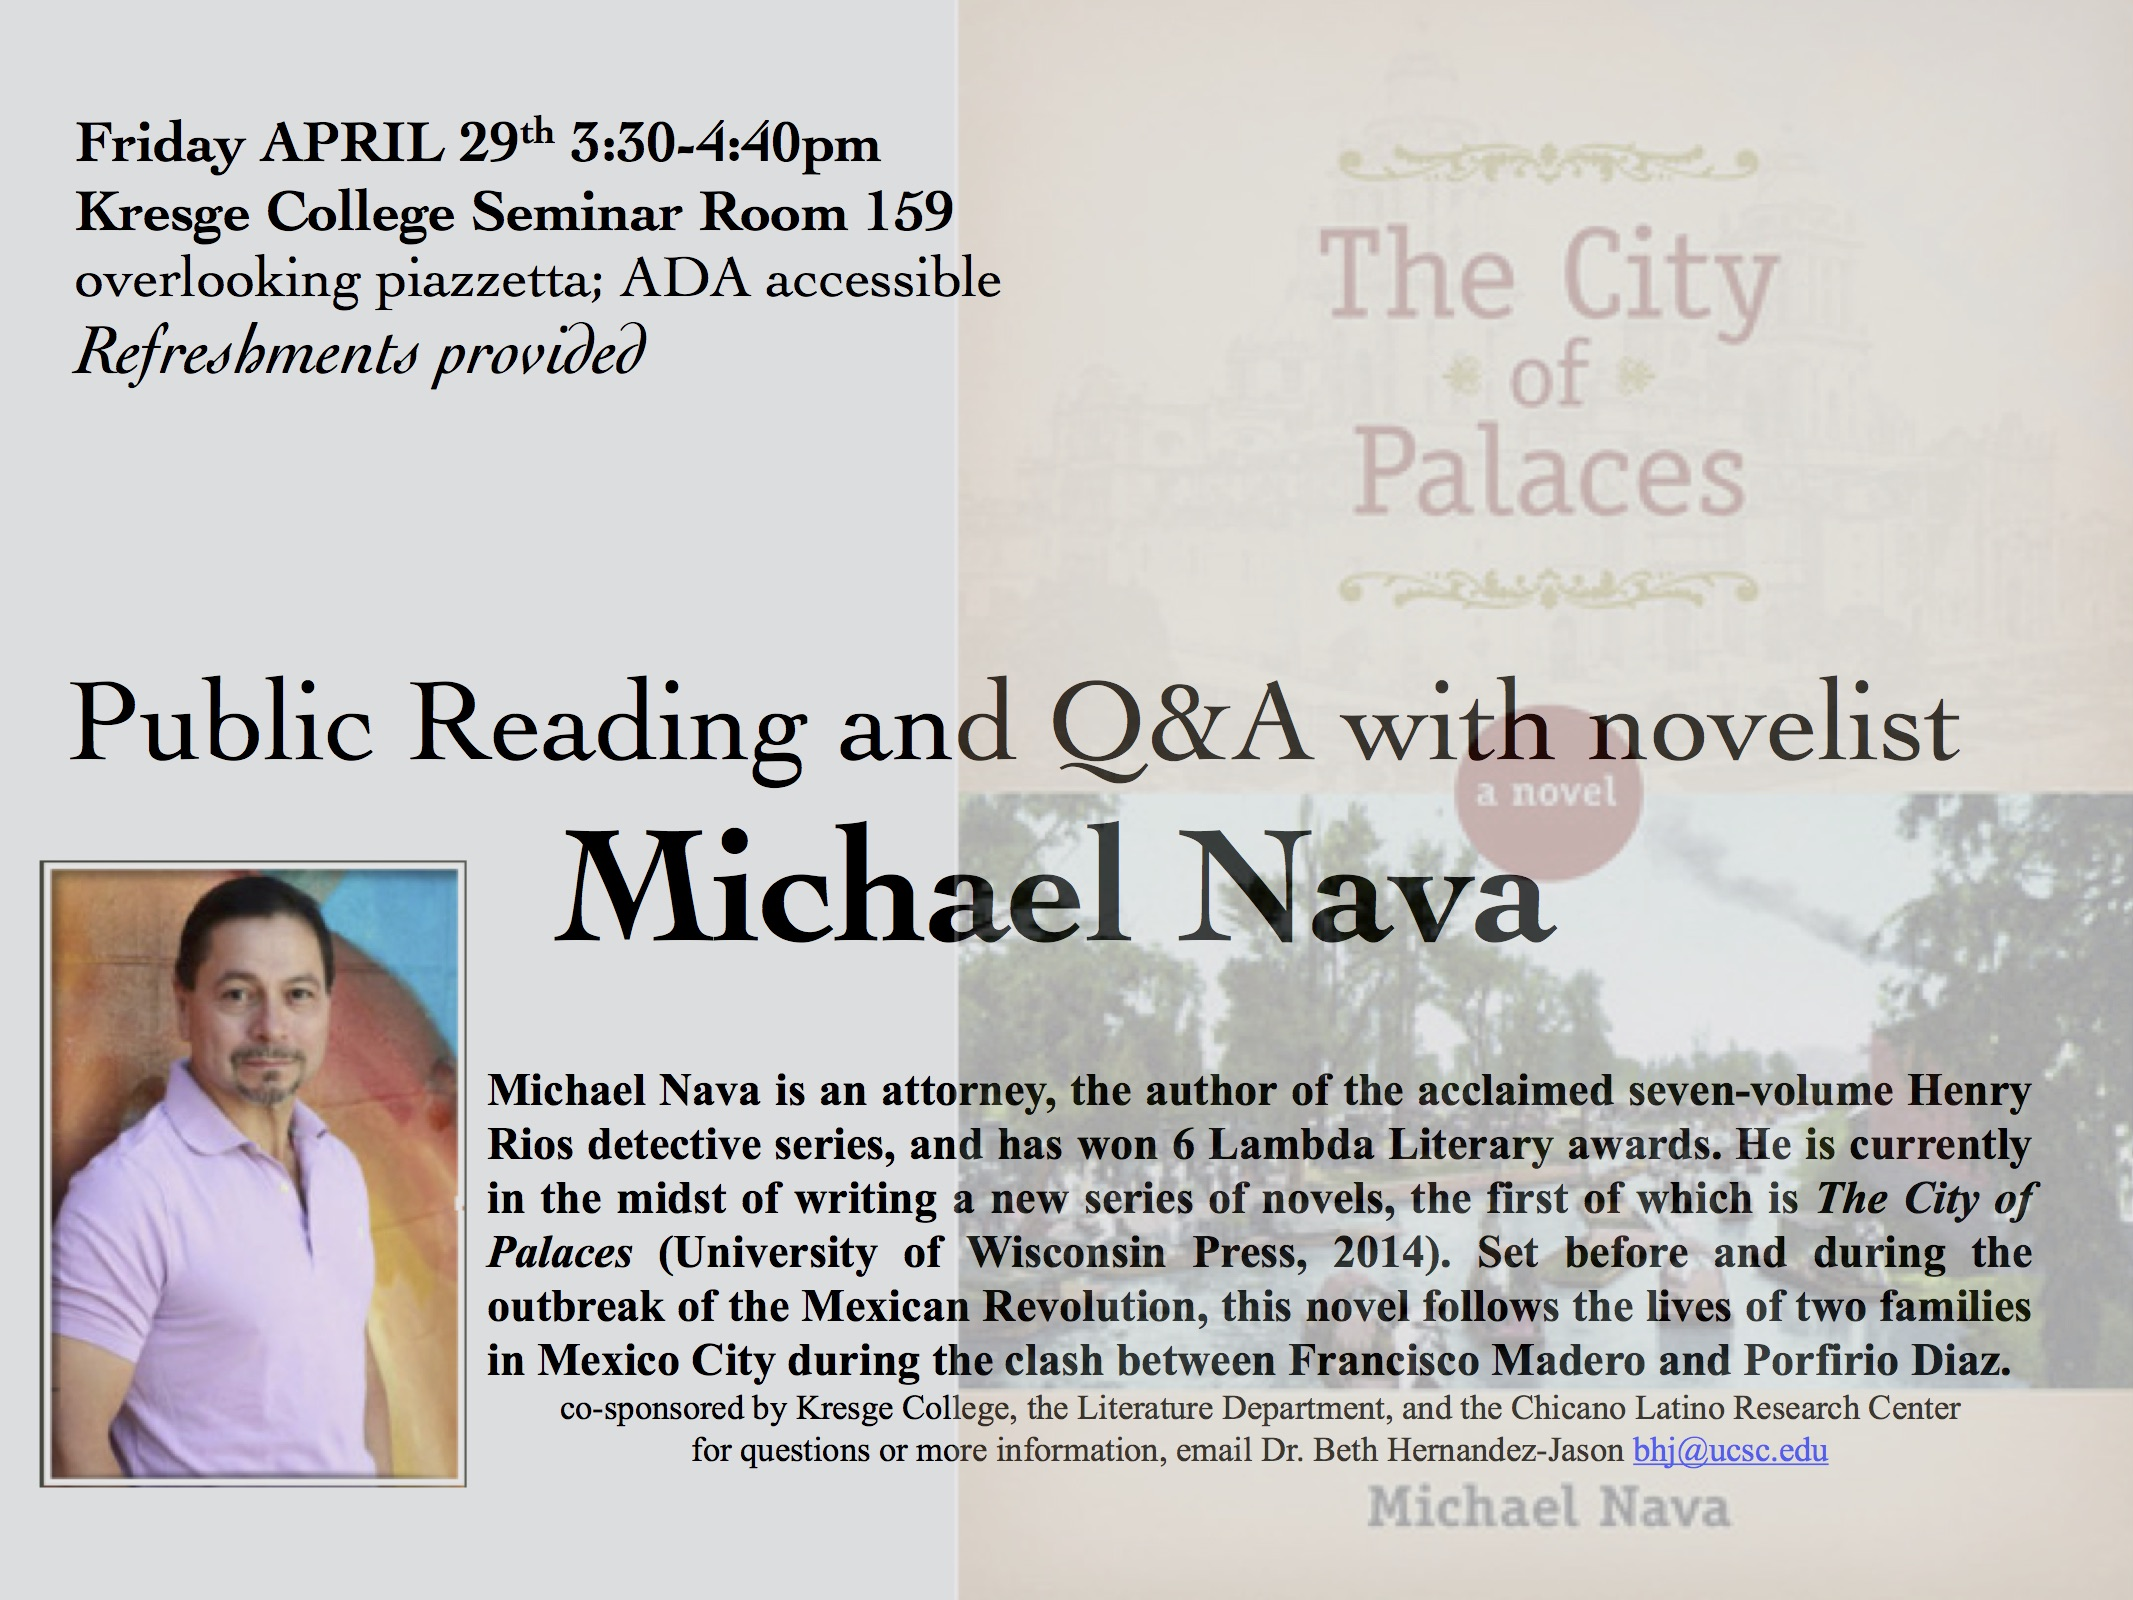 Public Reading and Q&A with novelist michael nava